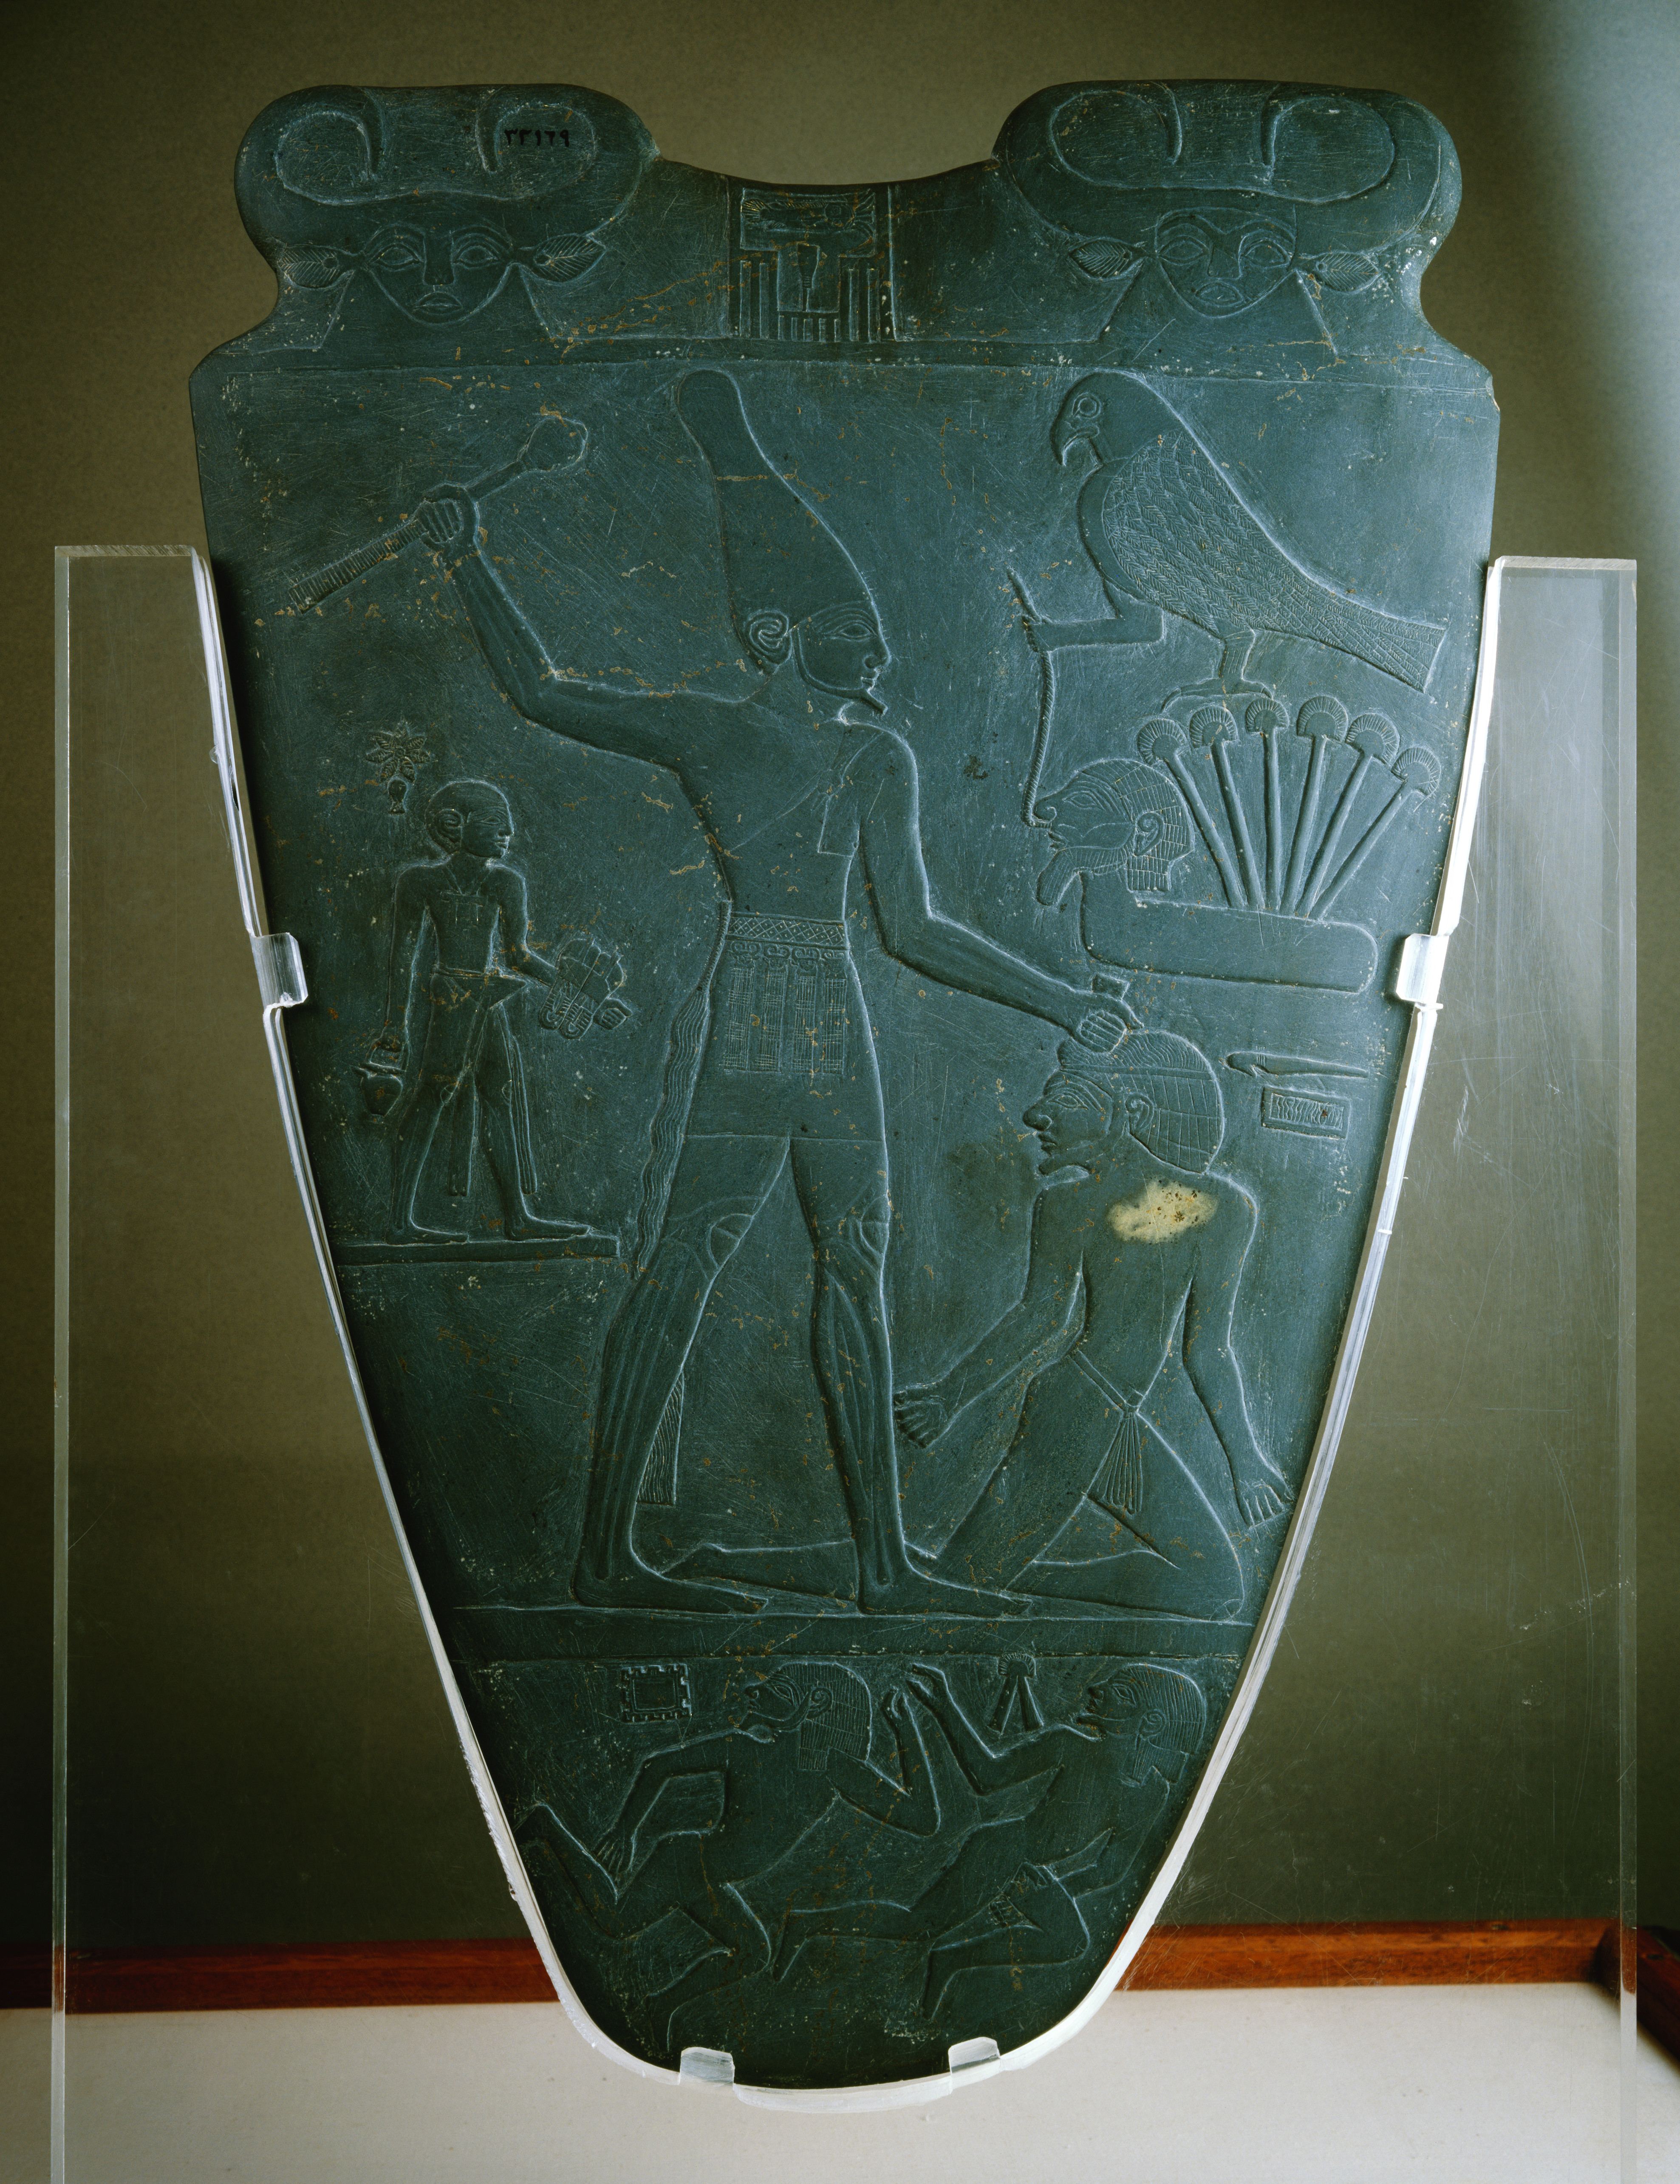 essay on palette of narmer Name: instructor: course: date: art history 4th edition the steele of naram-sin and the palette of narmer refer to egyptian archeological pieces that the steele of naram-sin and the palette of narmer - assignment the focus of this essay is on the famous artwork of van gogh that.